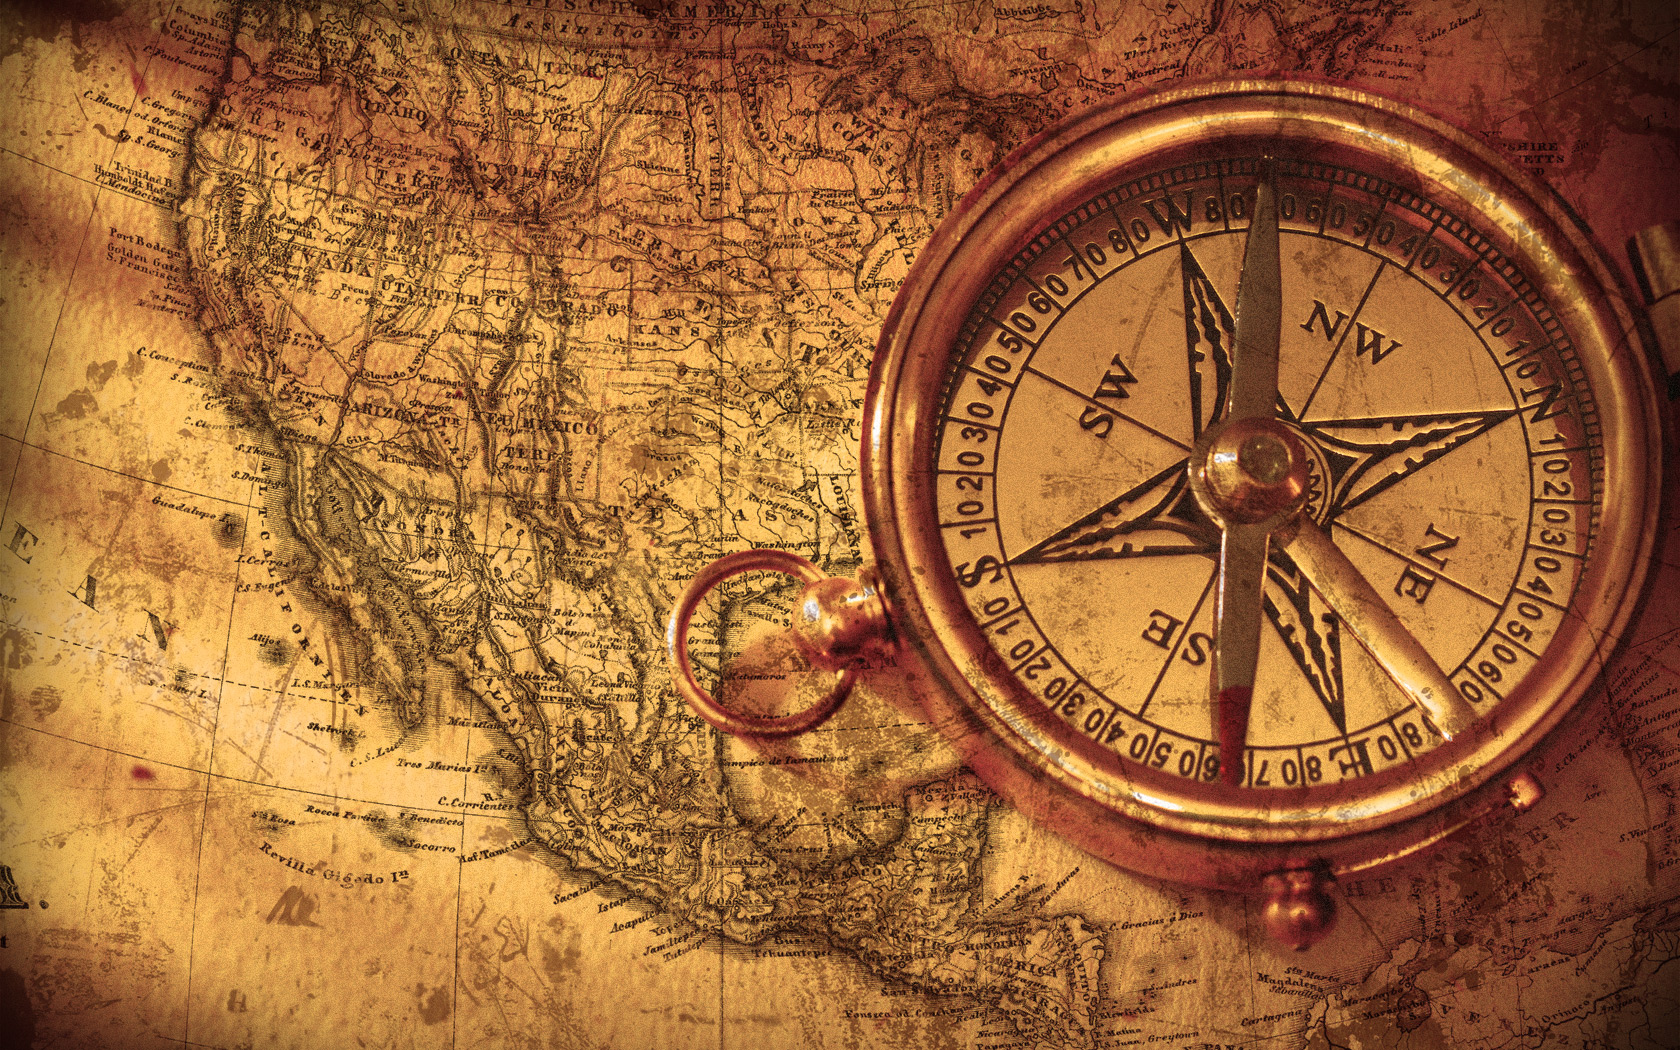 Vintage Compass by hourglassthorne